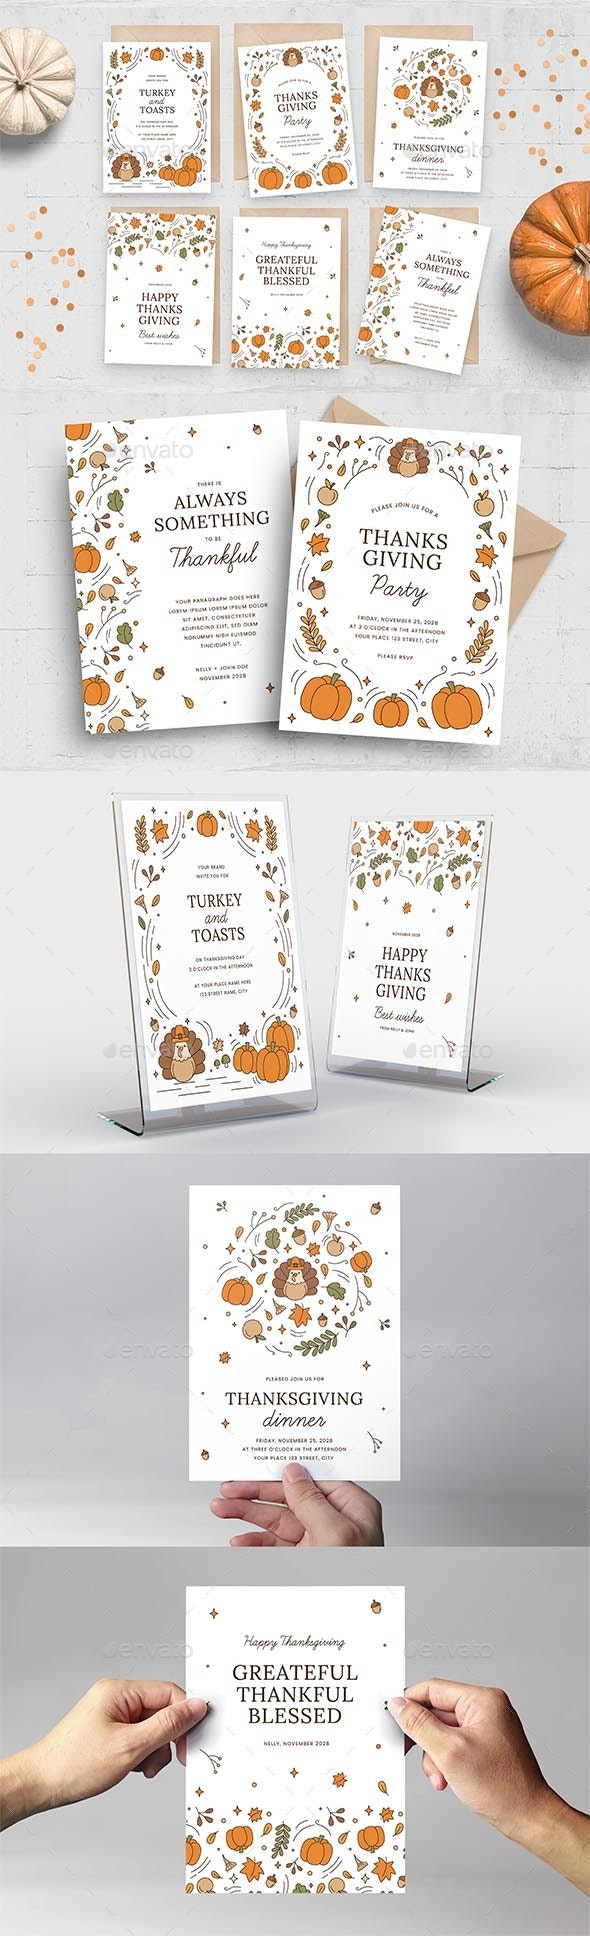 Greetings Cards - Holiday Greeting Cards